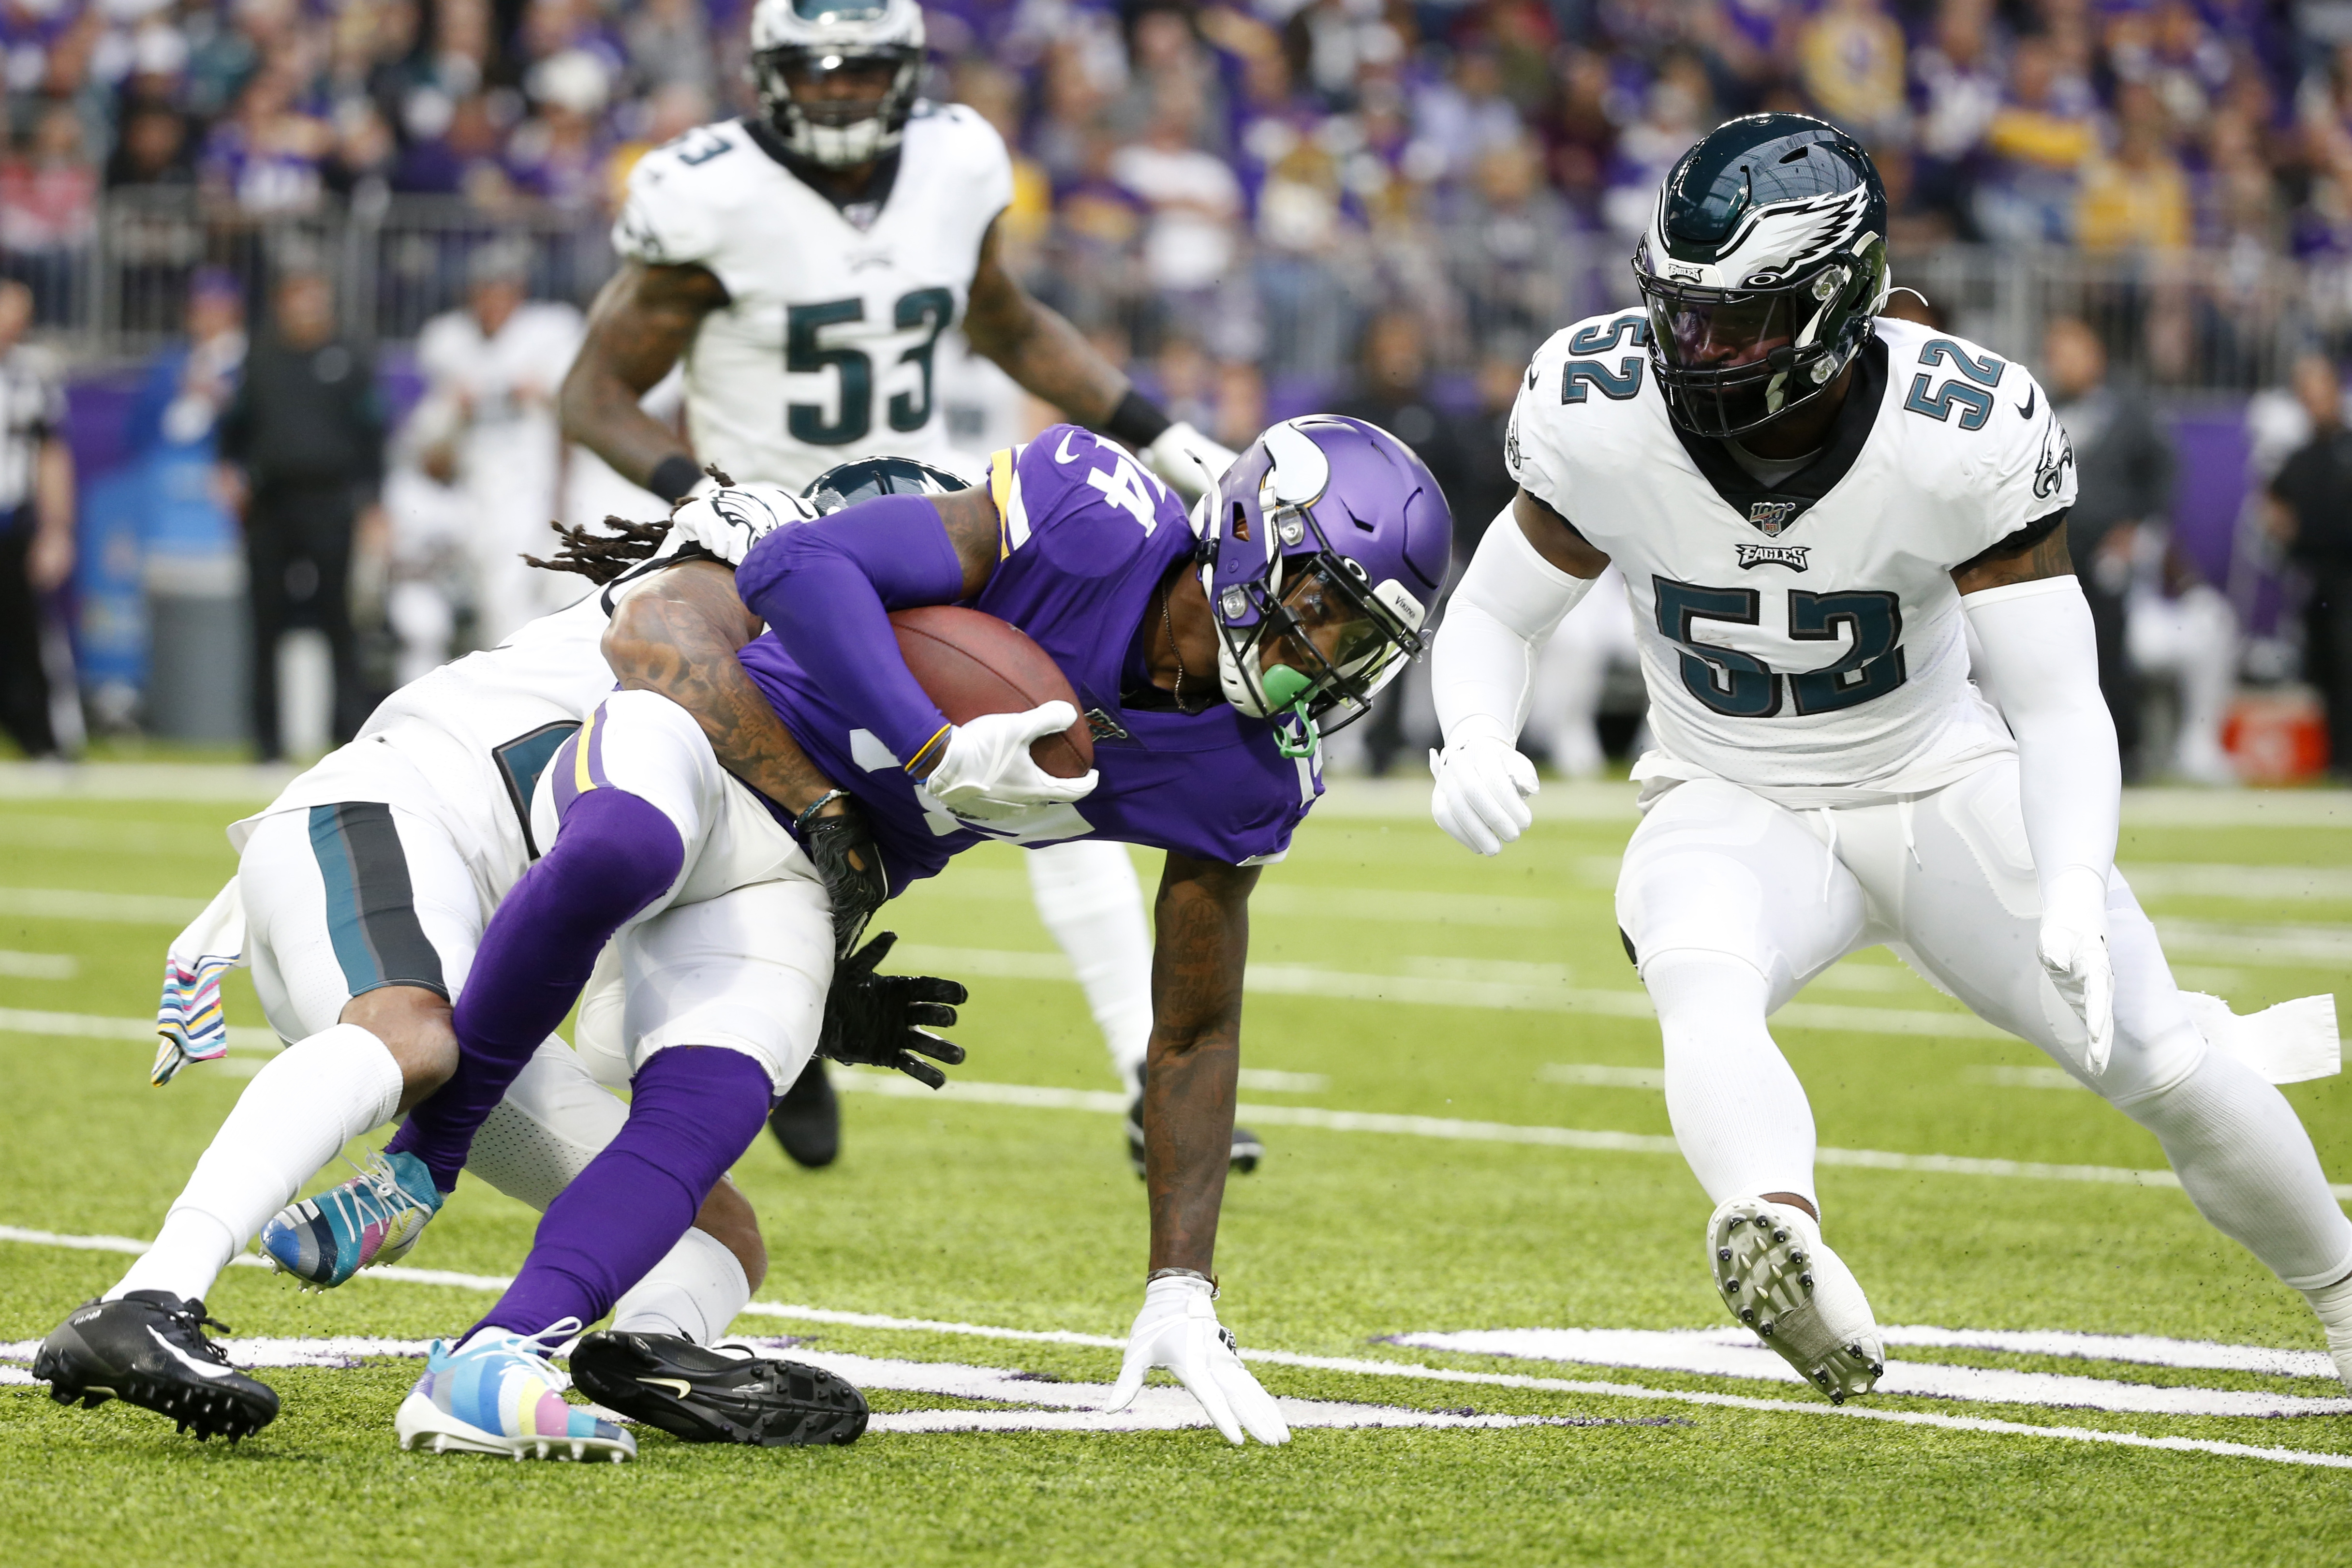 Eagles' Doug Pederson explains why Zach Brown was released | Was his departure sparked by Kirk Cousins criticism? (VIDEO)